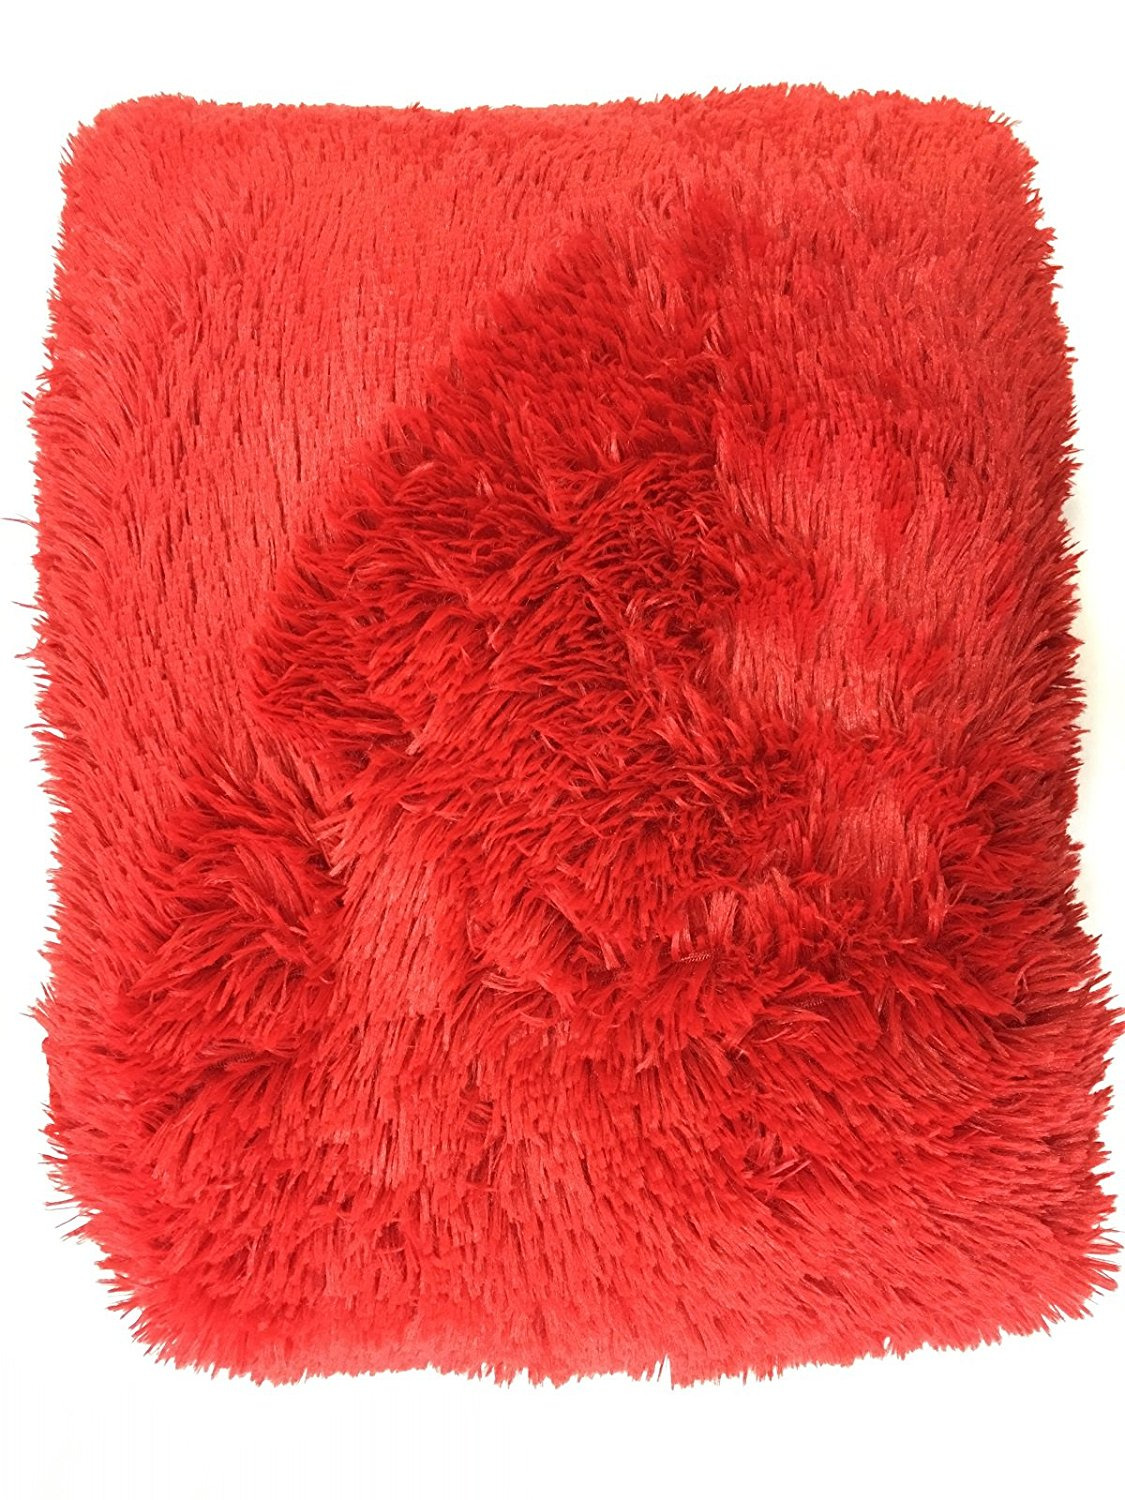 3 Piece King Holiday Red Sherpa Faux Fur Borrego Blanket soft cozy and warm Hollywood... by